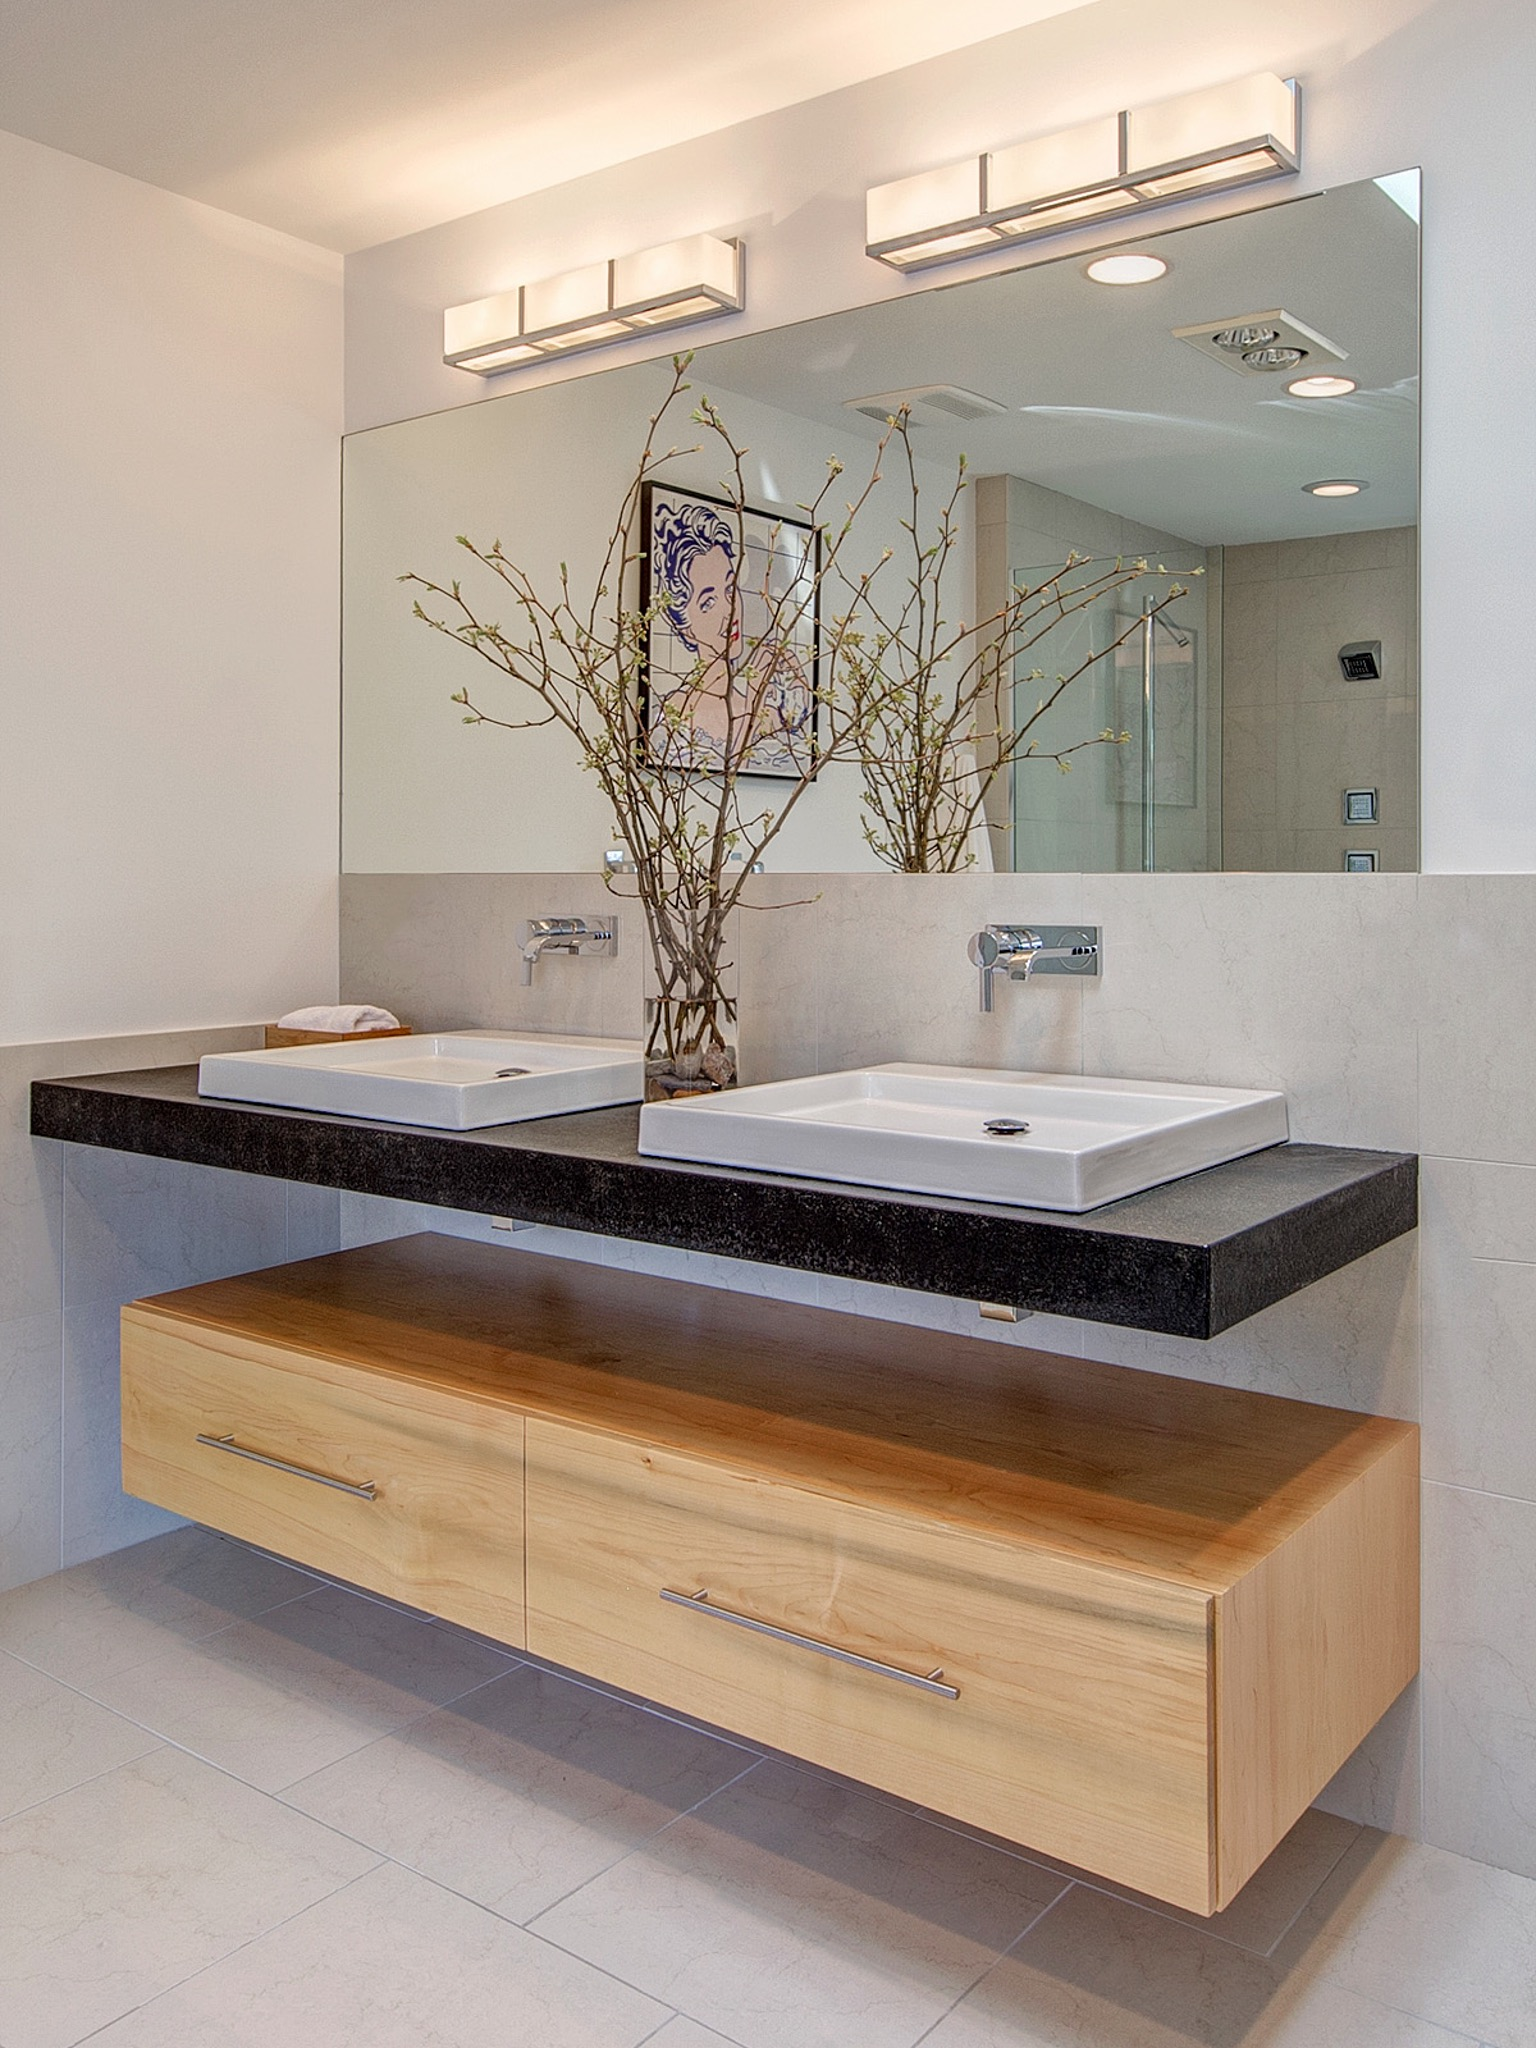 Cozy Stylish Floating Vanity And Cabinets Bathroom Furniture (View 9 of 18)